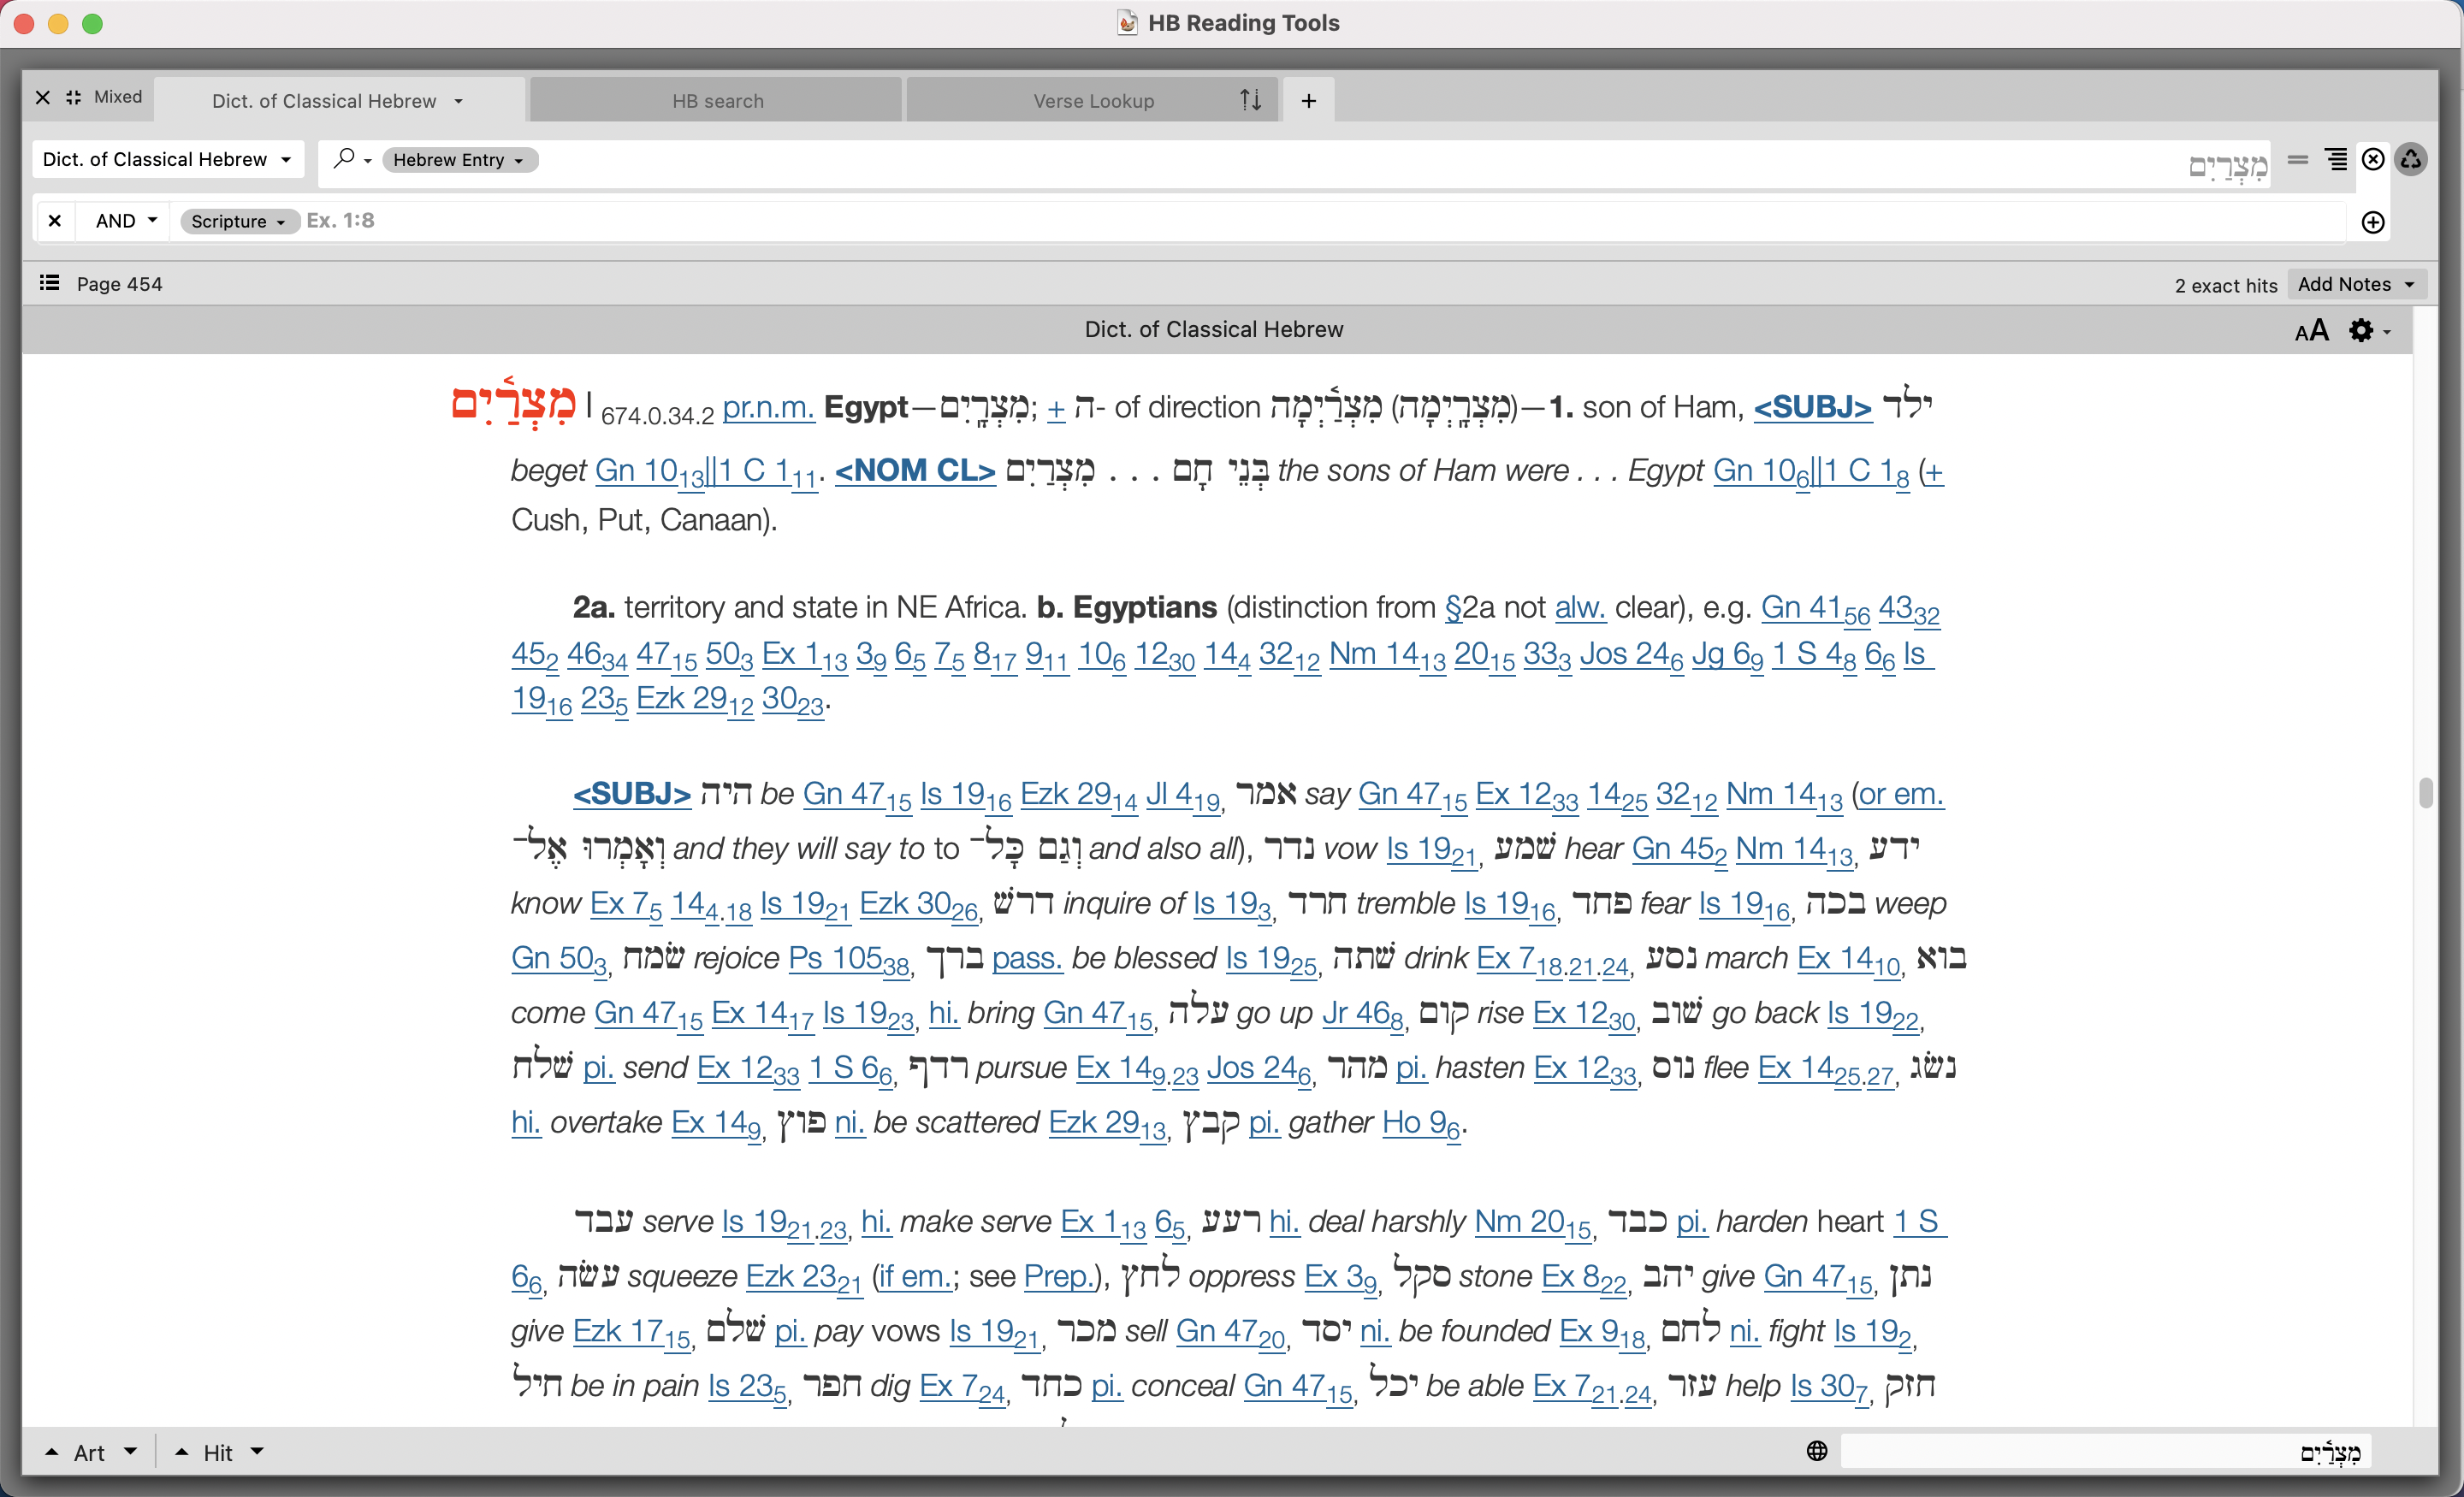 ⌥⌘M for toggling full-screen lexicon reading